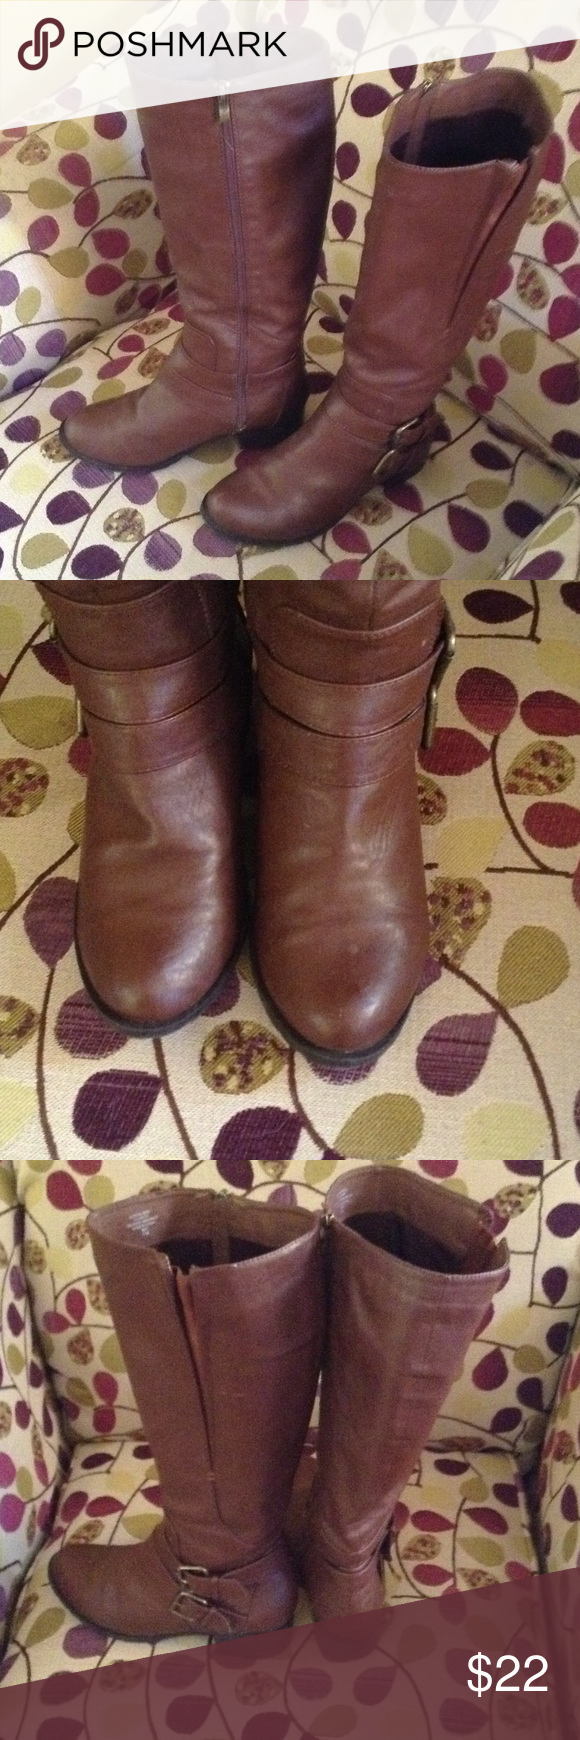 "Intaglia Brown Wide Calf Knee High Riding Boots EUC brown tall riding boots for a wide calf! Top measures 8"" so a 16"" -17"" calf would be a great fit! Side of boot has an e tea stretch panel making it even better of a wider calf 18"" would fit as well, I believe! They don't fit anymore after weight loss! Bottom tread is not worn at all so much love left! See pics  great boots! Intaglia Shoes Over the Knee Boots"